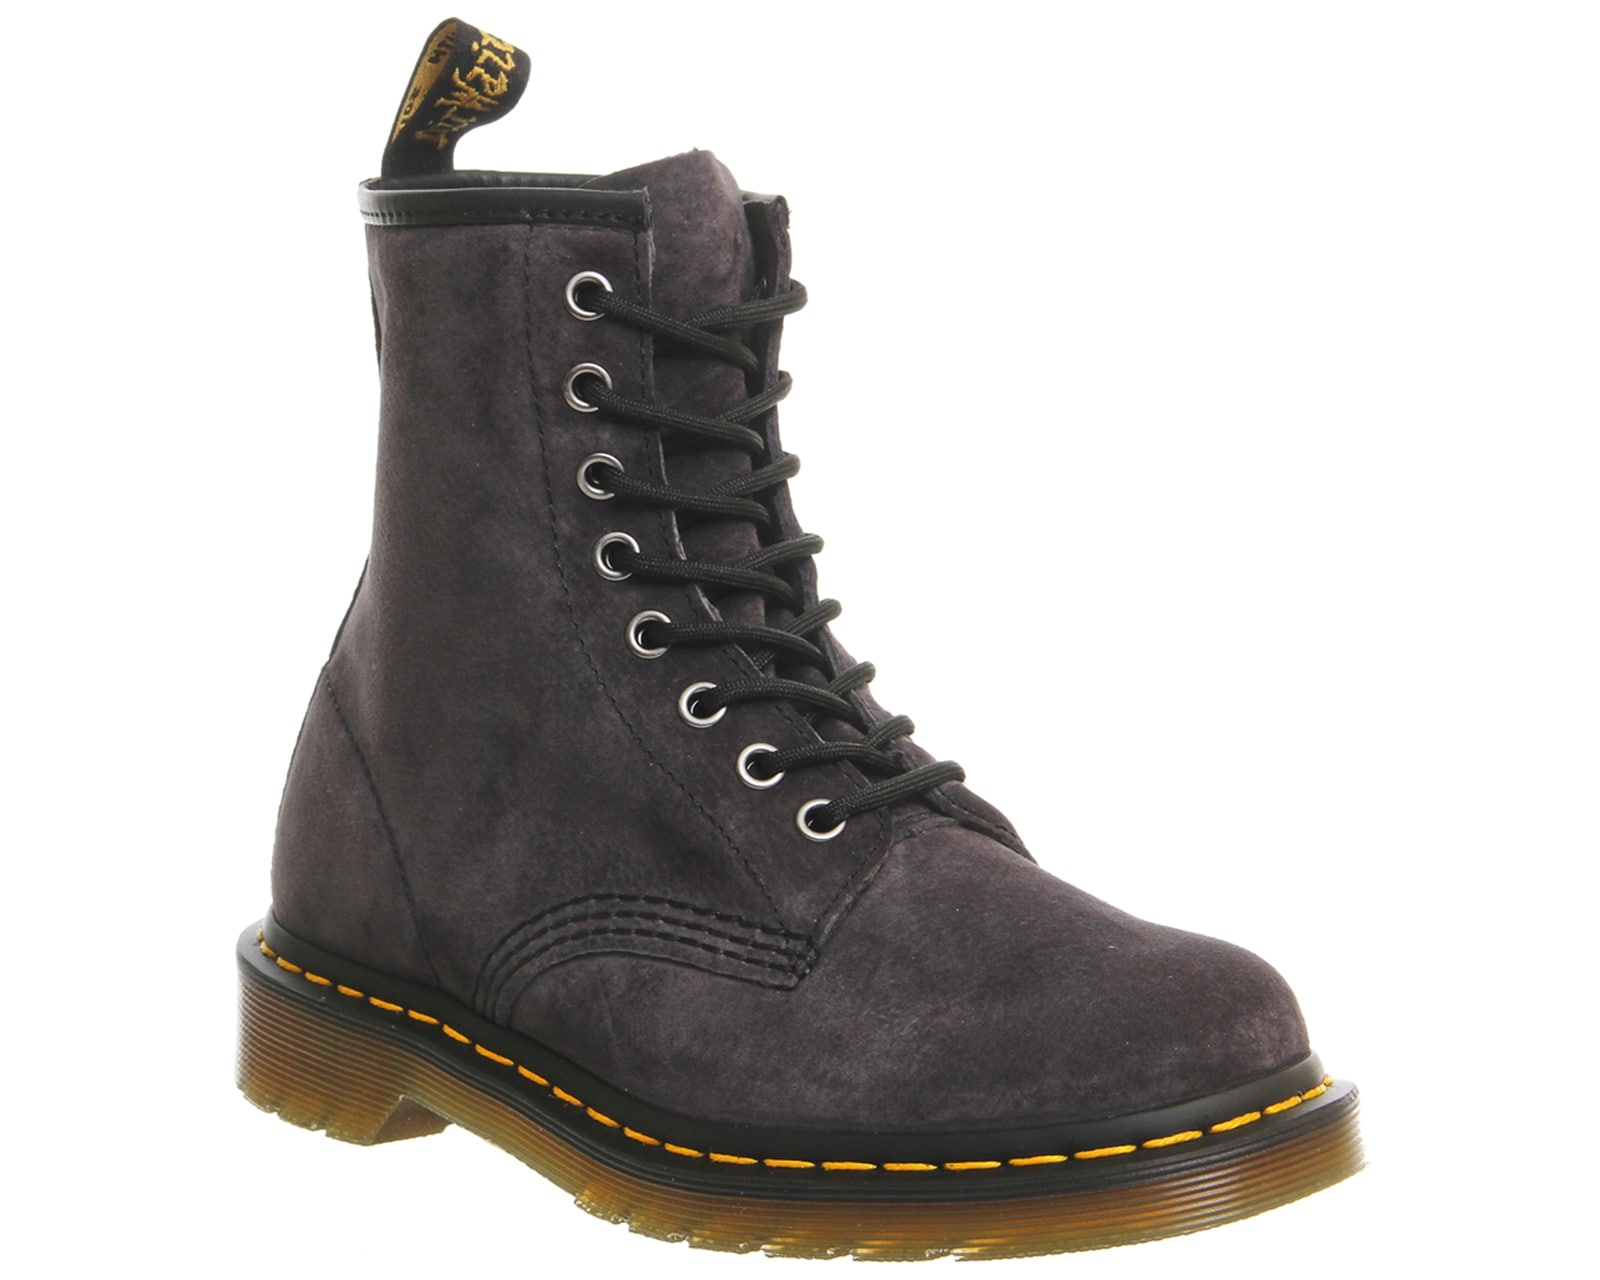 womens dr martens 8 eyelet lace up boots graphite grey